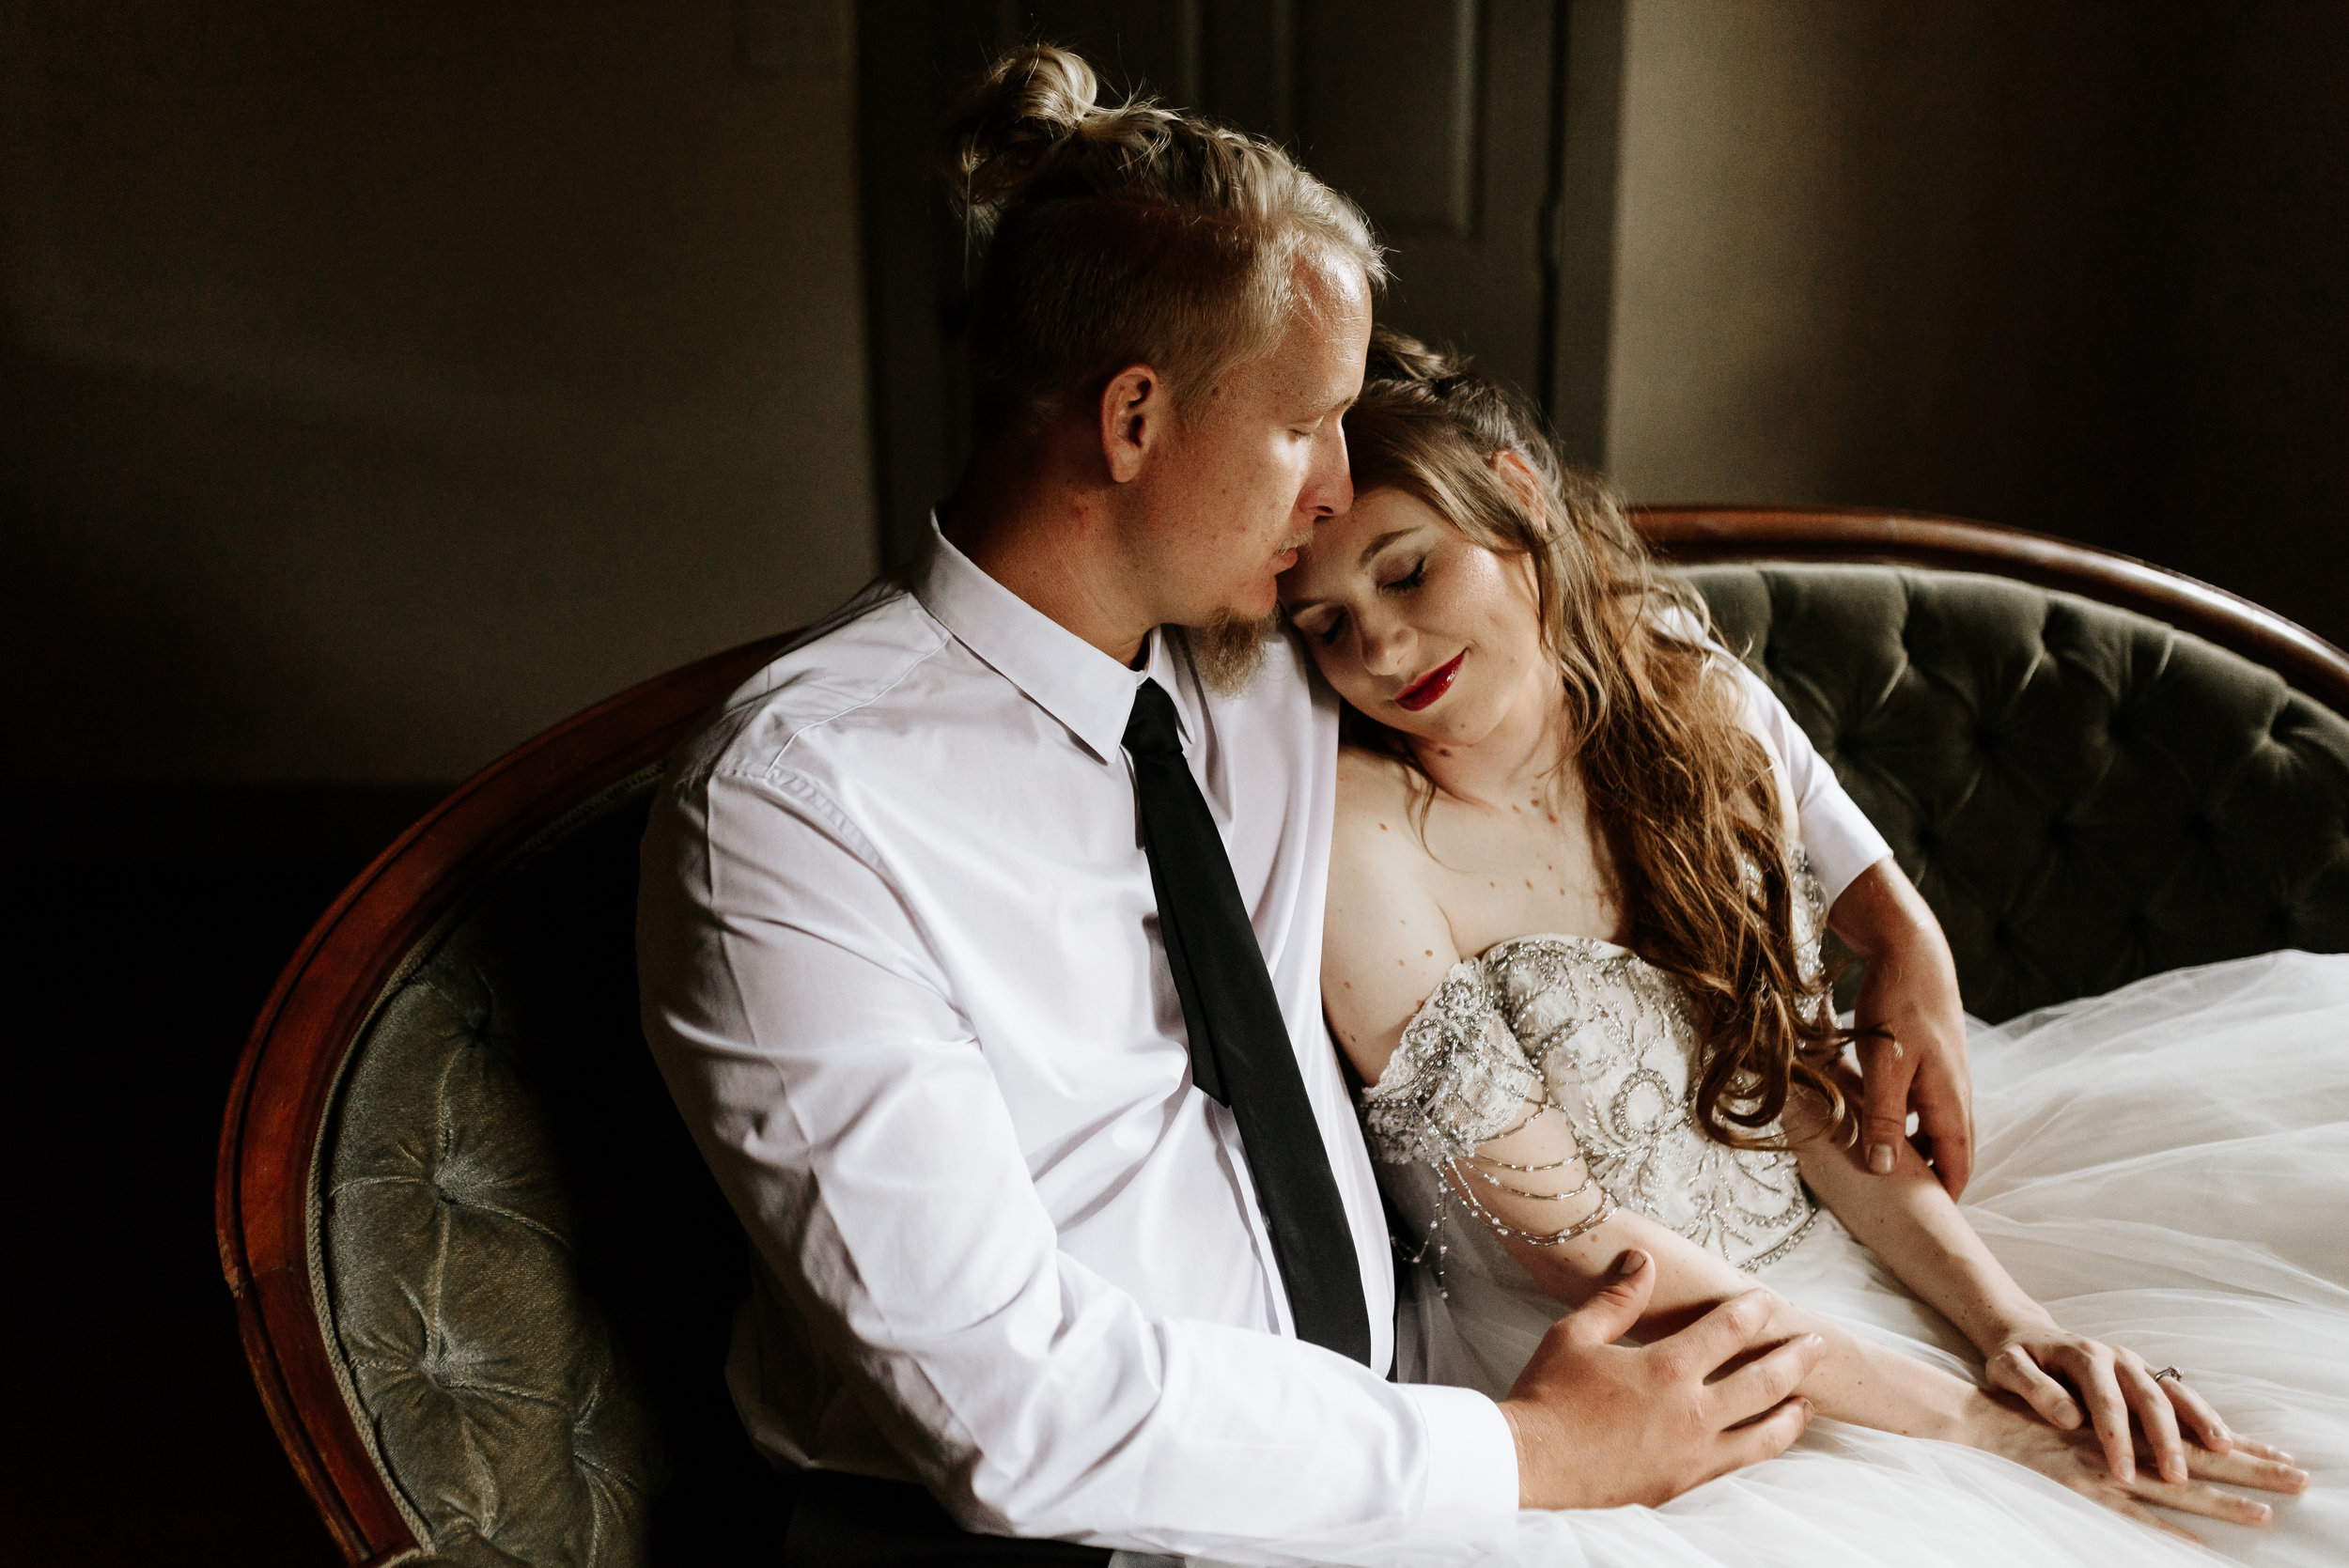 Grant-Station-Styled-Shoot-Whimsical-Moody-Fairytale-Wedding-Photography-by-V-9634.jpg